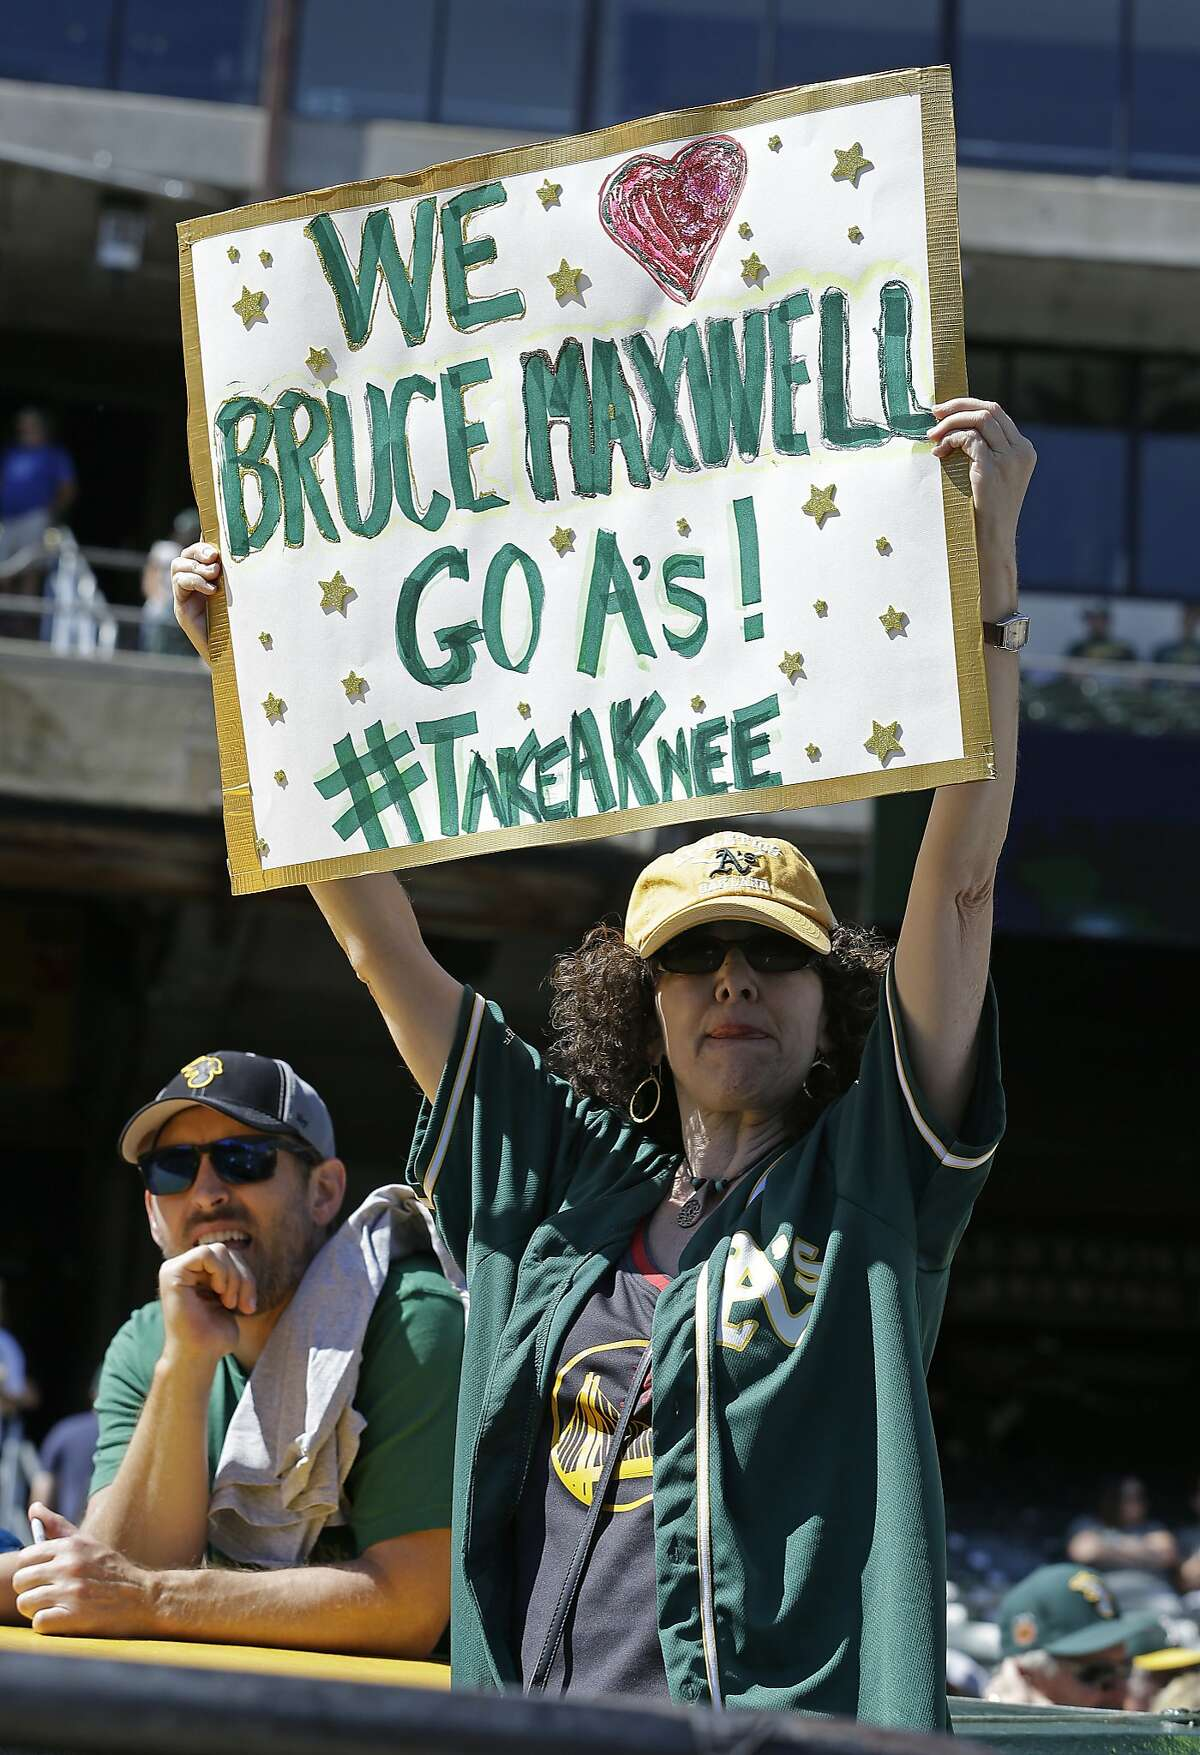 Nancy Levine of Marin, Calif., holds a sign in support of Oakland Athletics' Bruce Maxwell, who knelt during the national anthem for a second day prior to the baseball game against the Texas Rangers Sunday, Sept. 24, 2017, in Oakland, Calif. (AP Photo/Ben Margot)